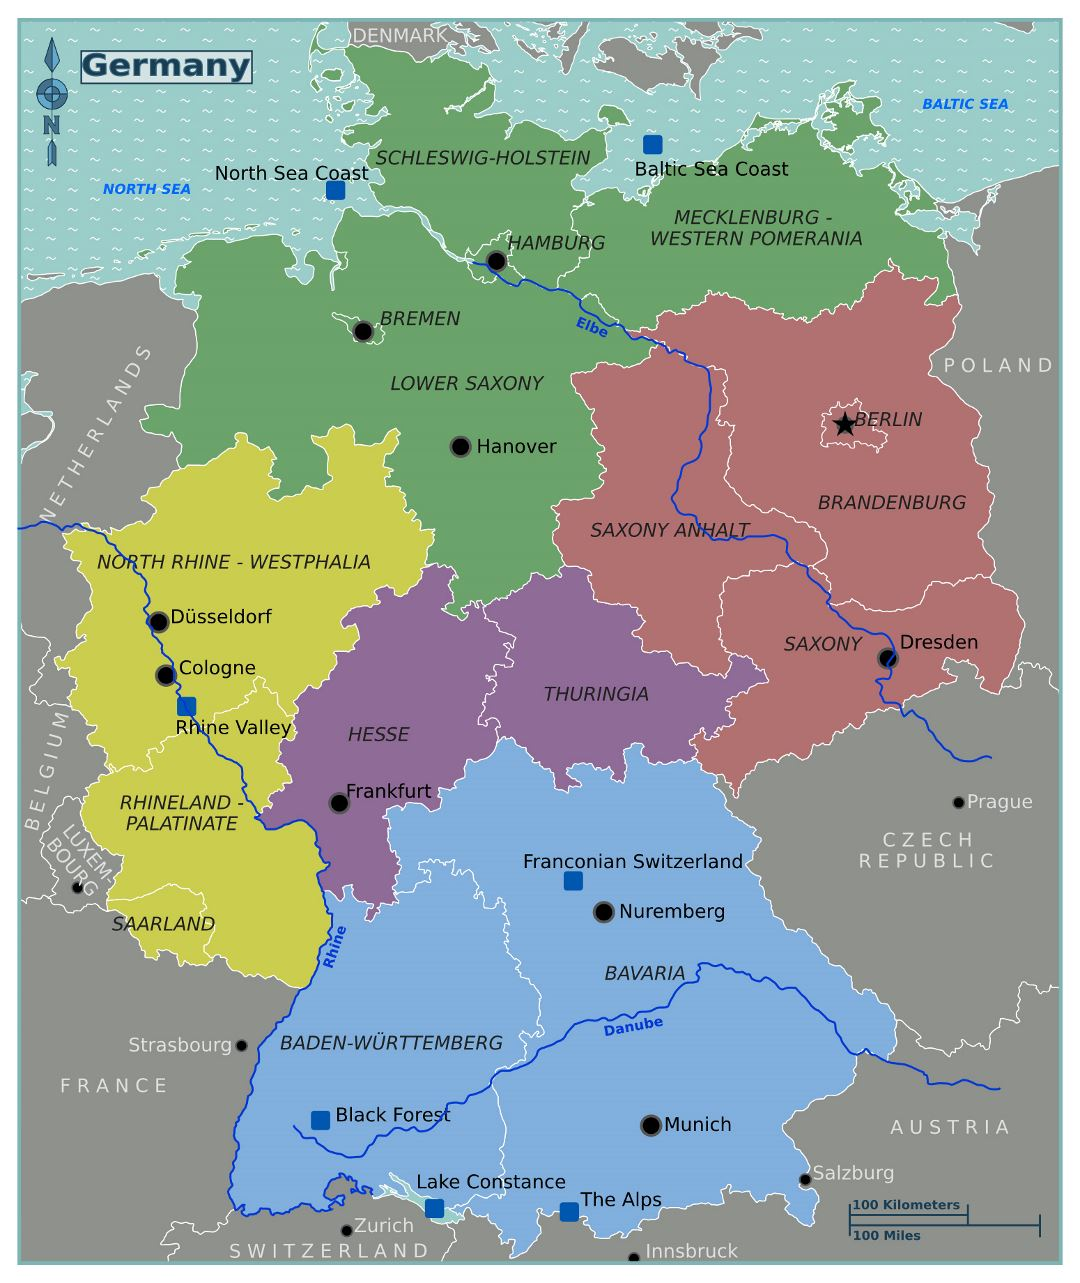 asia map with countries with Large Regions Map Of Germany on Island Of Kyushu together with Foz Do Iguacu Location On The Brazil Map additionally Large Tourist Map Of Egypt likewise Israel Political Map also Visit Minsk Now.